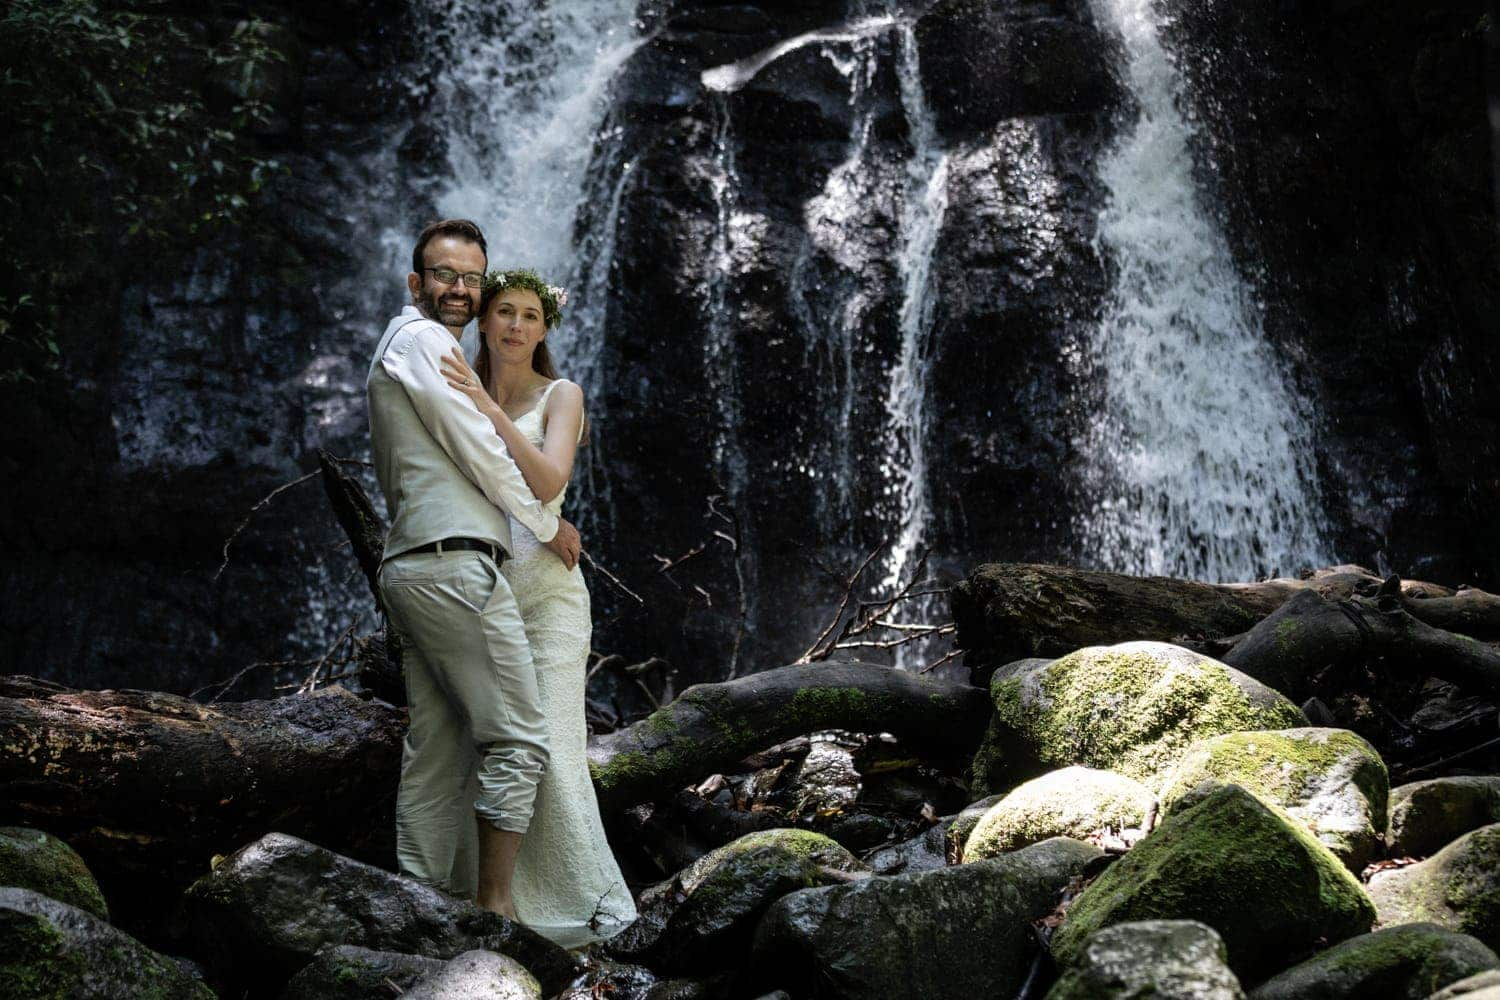 Couple stands in font of waterfall for wedding photos.